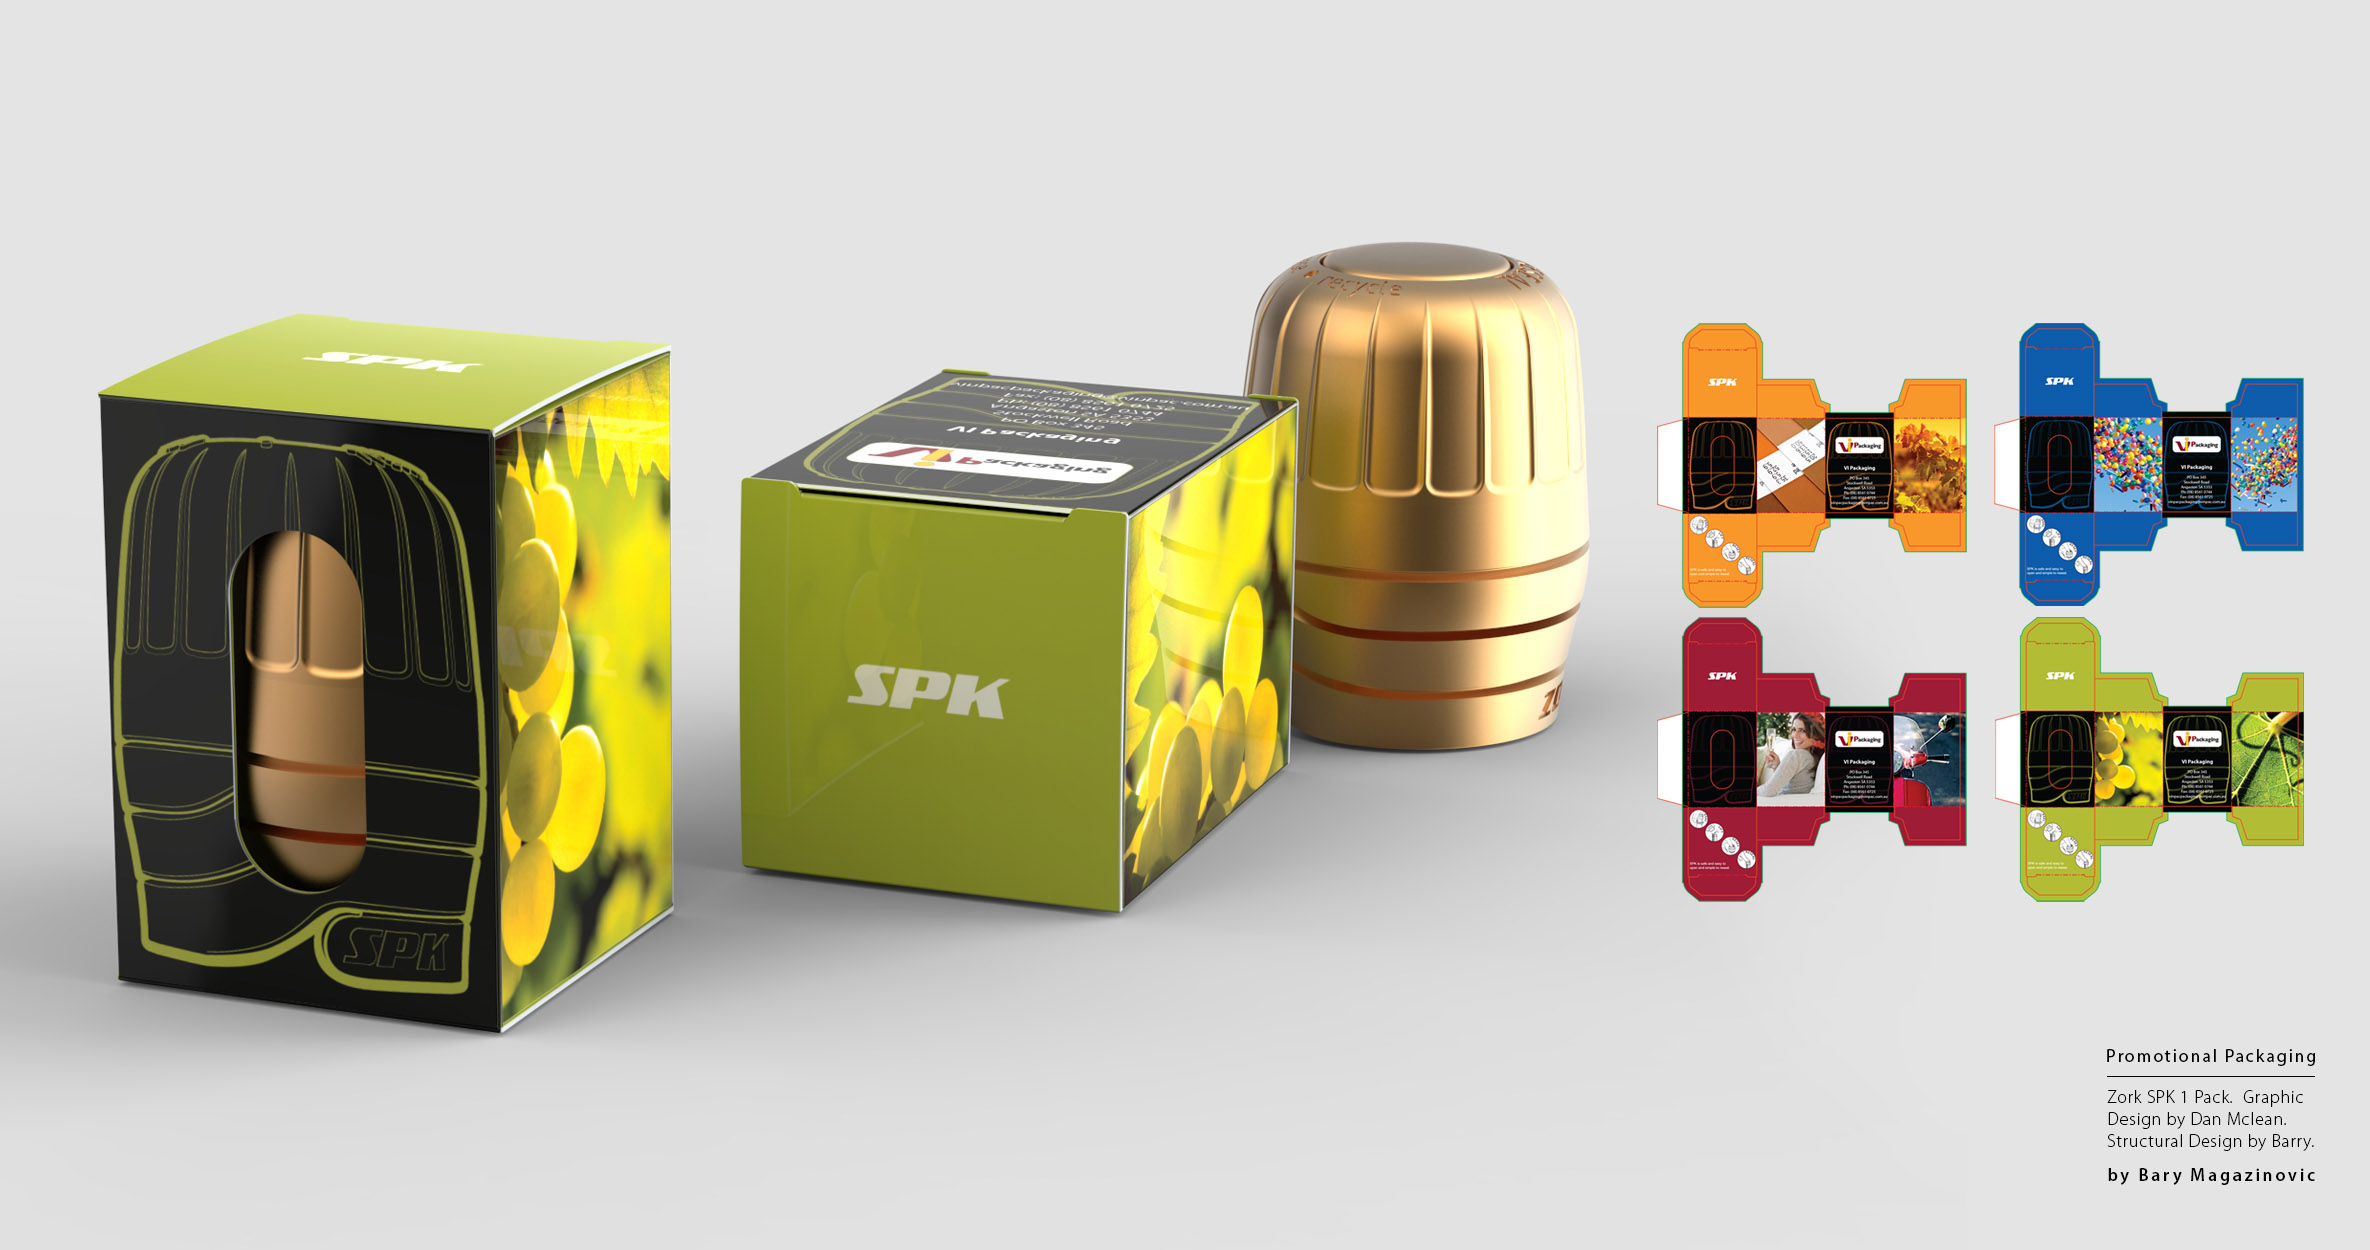 Australian Product Design Industrial Design graphic design marketing packaging single by Barry Magazinovic